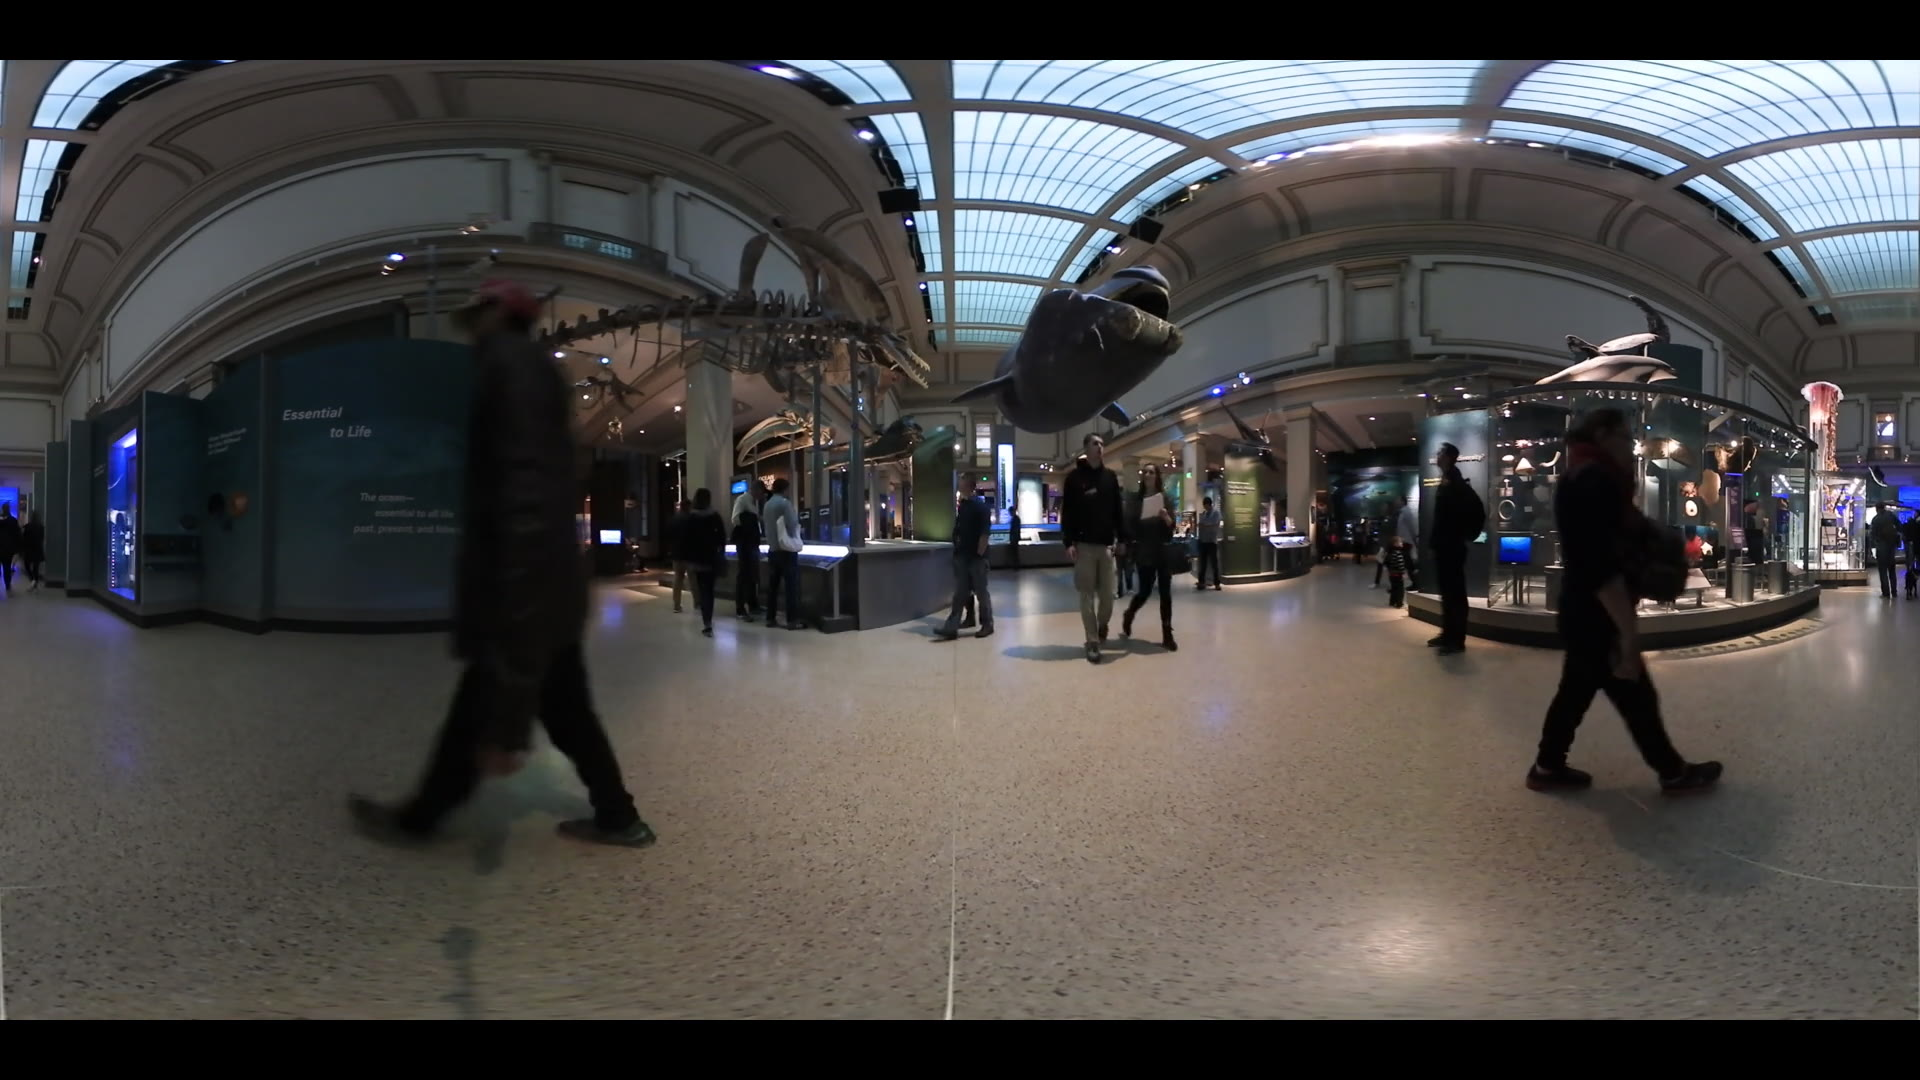 360 VR Video Smithsonian Museum Of Natural History Washington DC. Ocean Origins Hall Exhibit. 2:1 Ratio for Virtual Reality